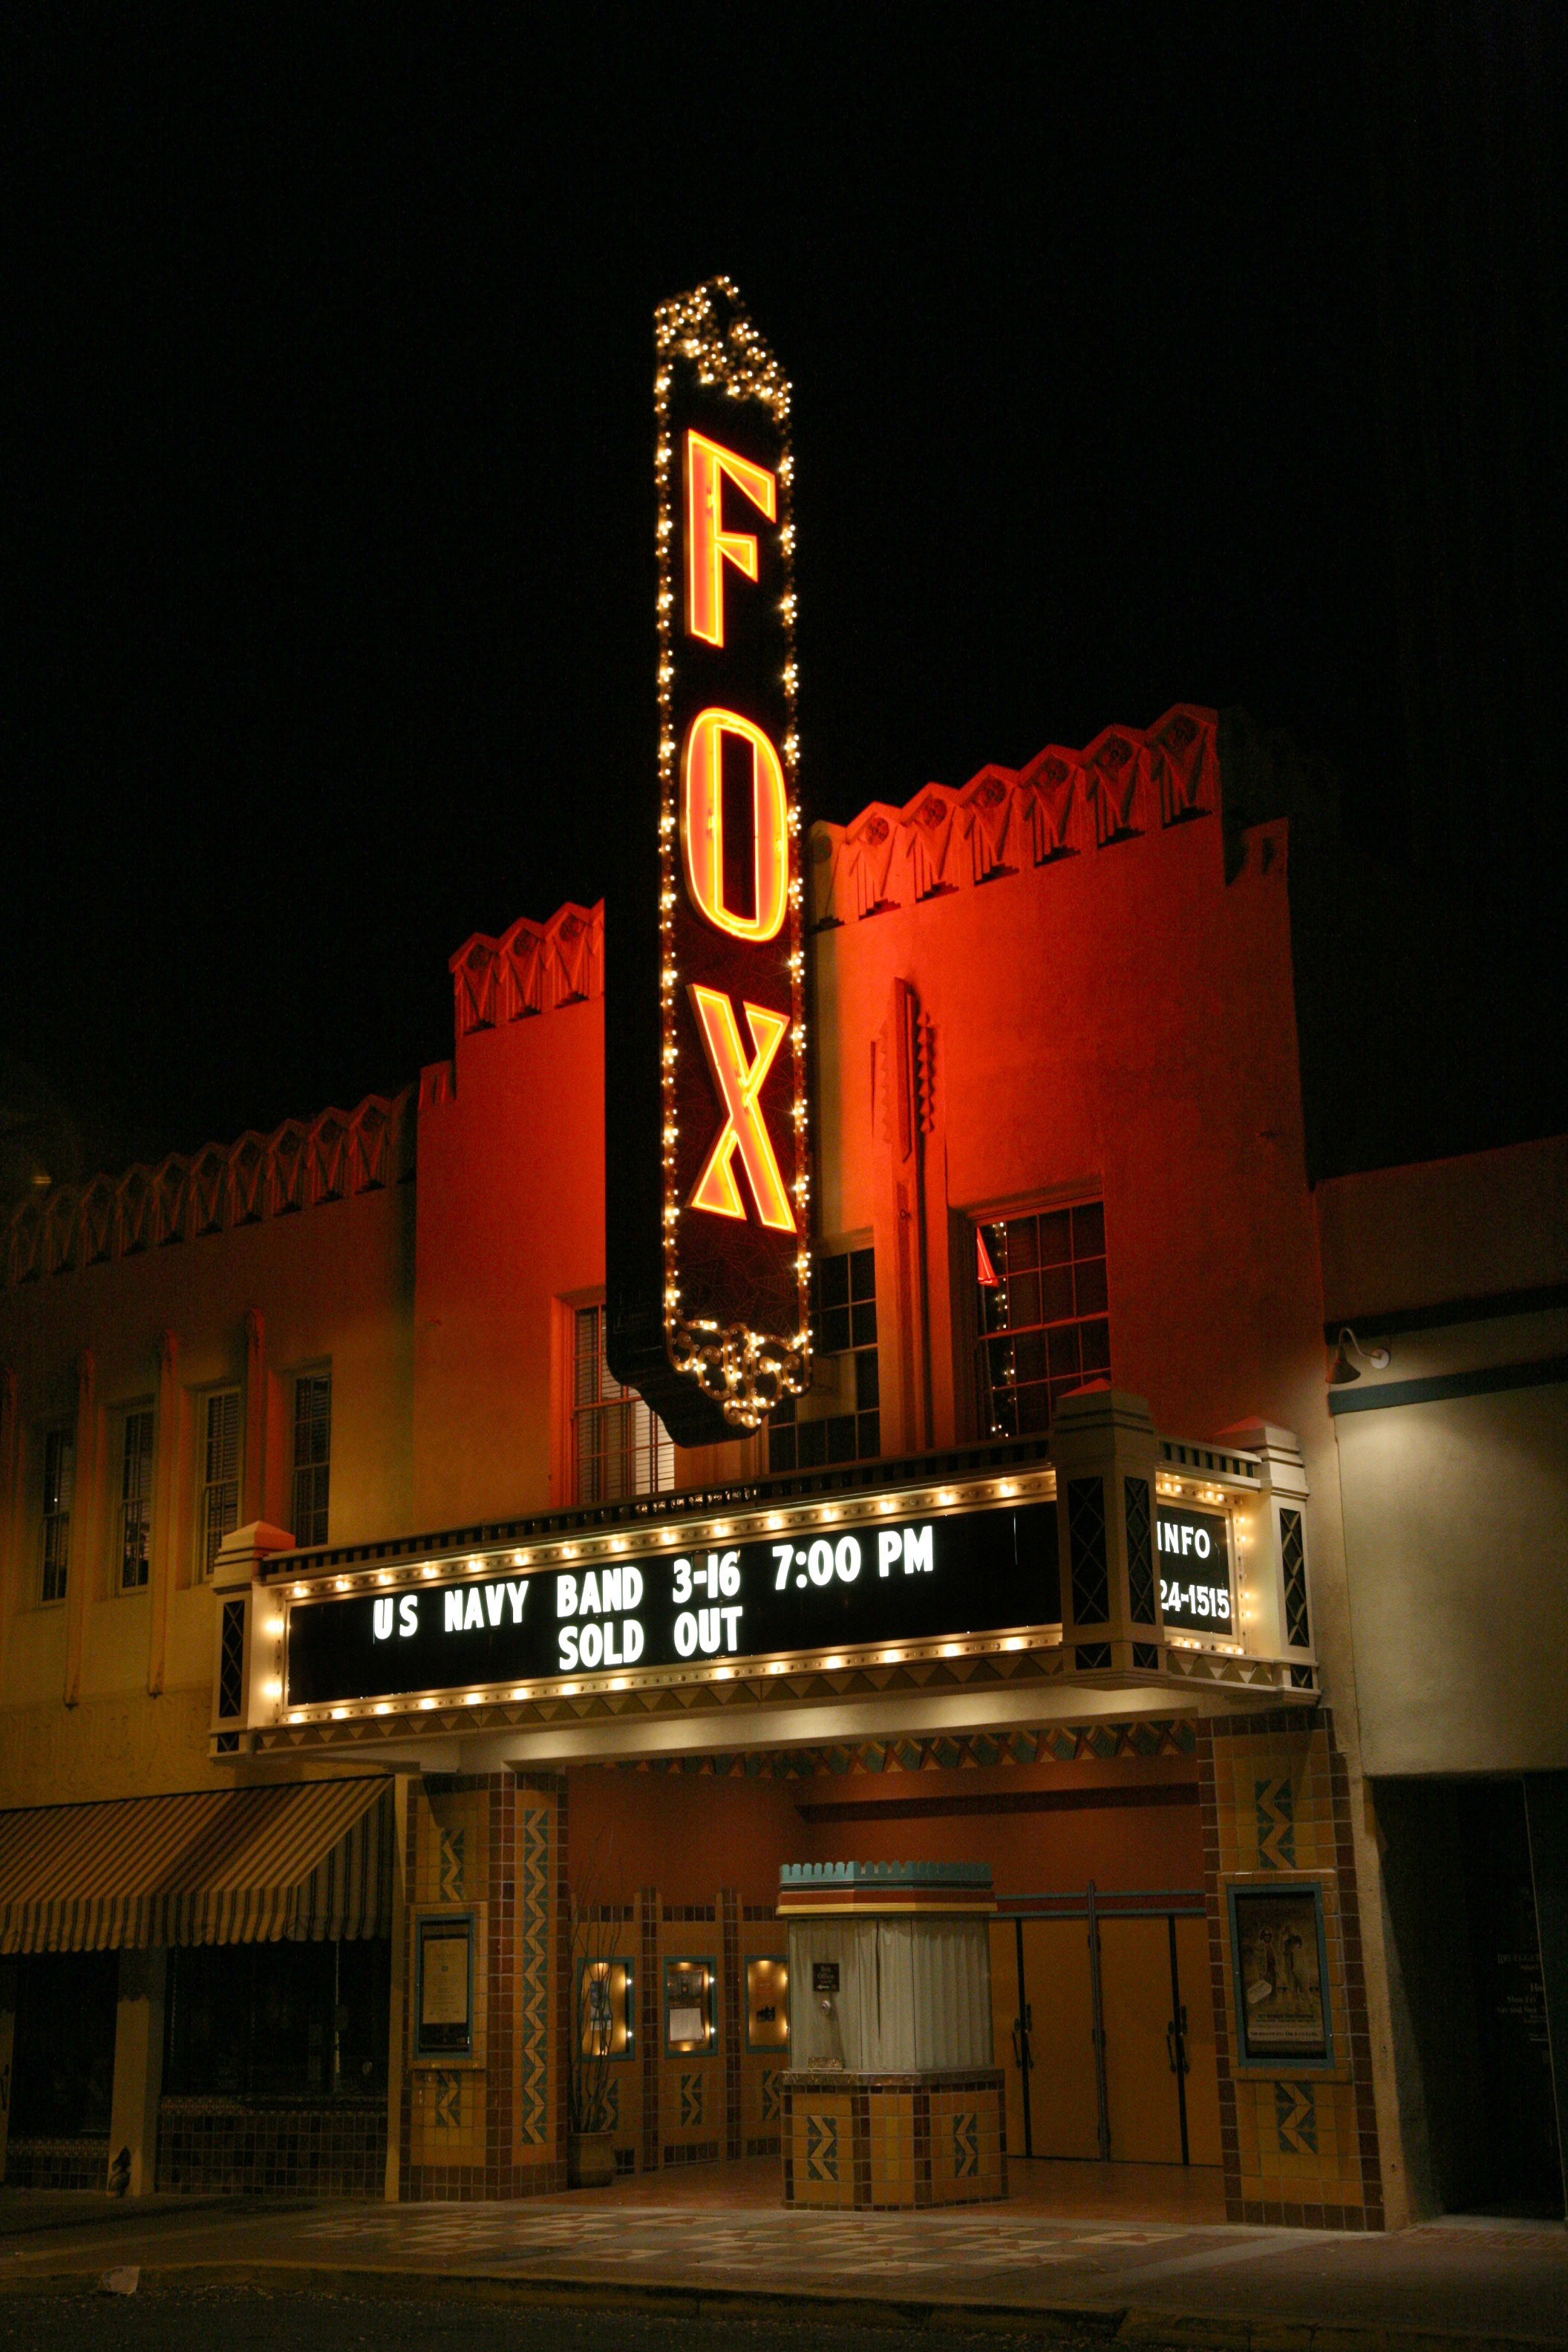 Tucson Entertainment History - The Fox Theater  The art deco styled Fox Theater in Tucson was built in 1929, closed in 1974, and renovated from 1999 to 2005 at a cost of $13 million. The Fox now features music performance, comedy and seasonal movies -  →  Upcoming shows at the Fox.